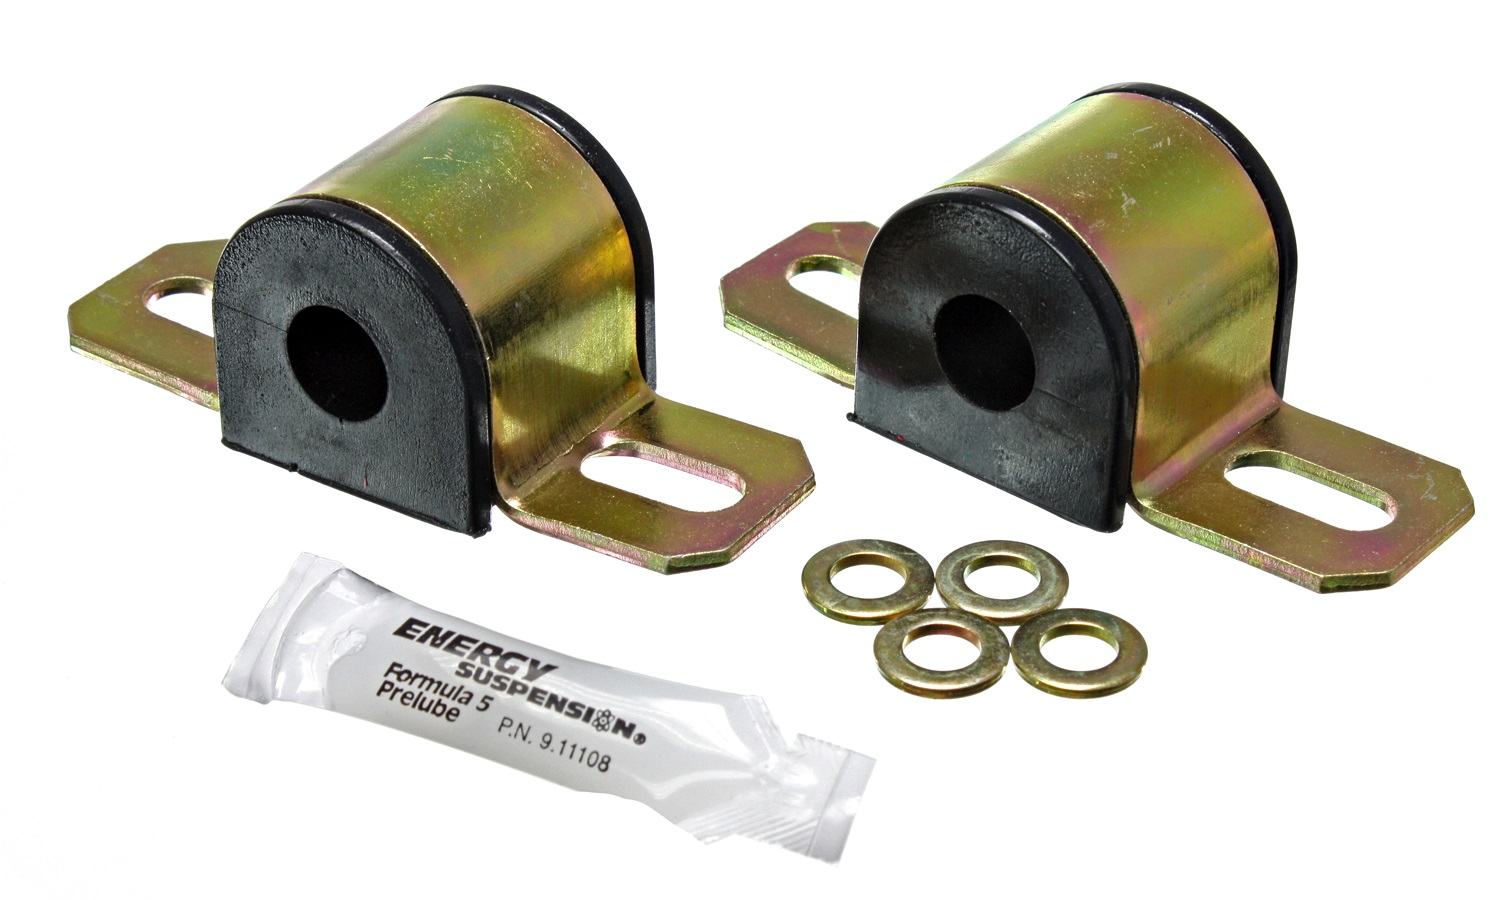 Energy Suspension Suspension Stabilizer Bar Bushing Kit (9.5105G)